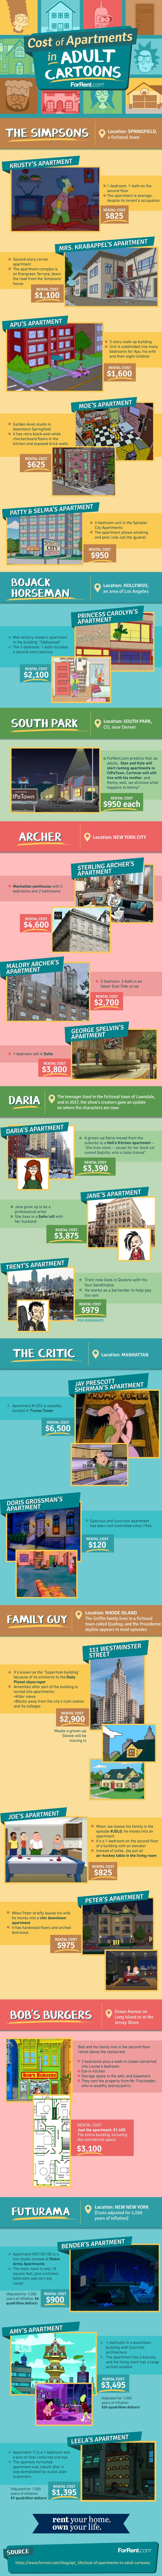 cost-of-apartments-in-adult-cartoons_IG-align-thoughts